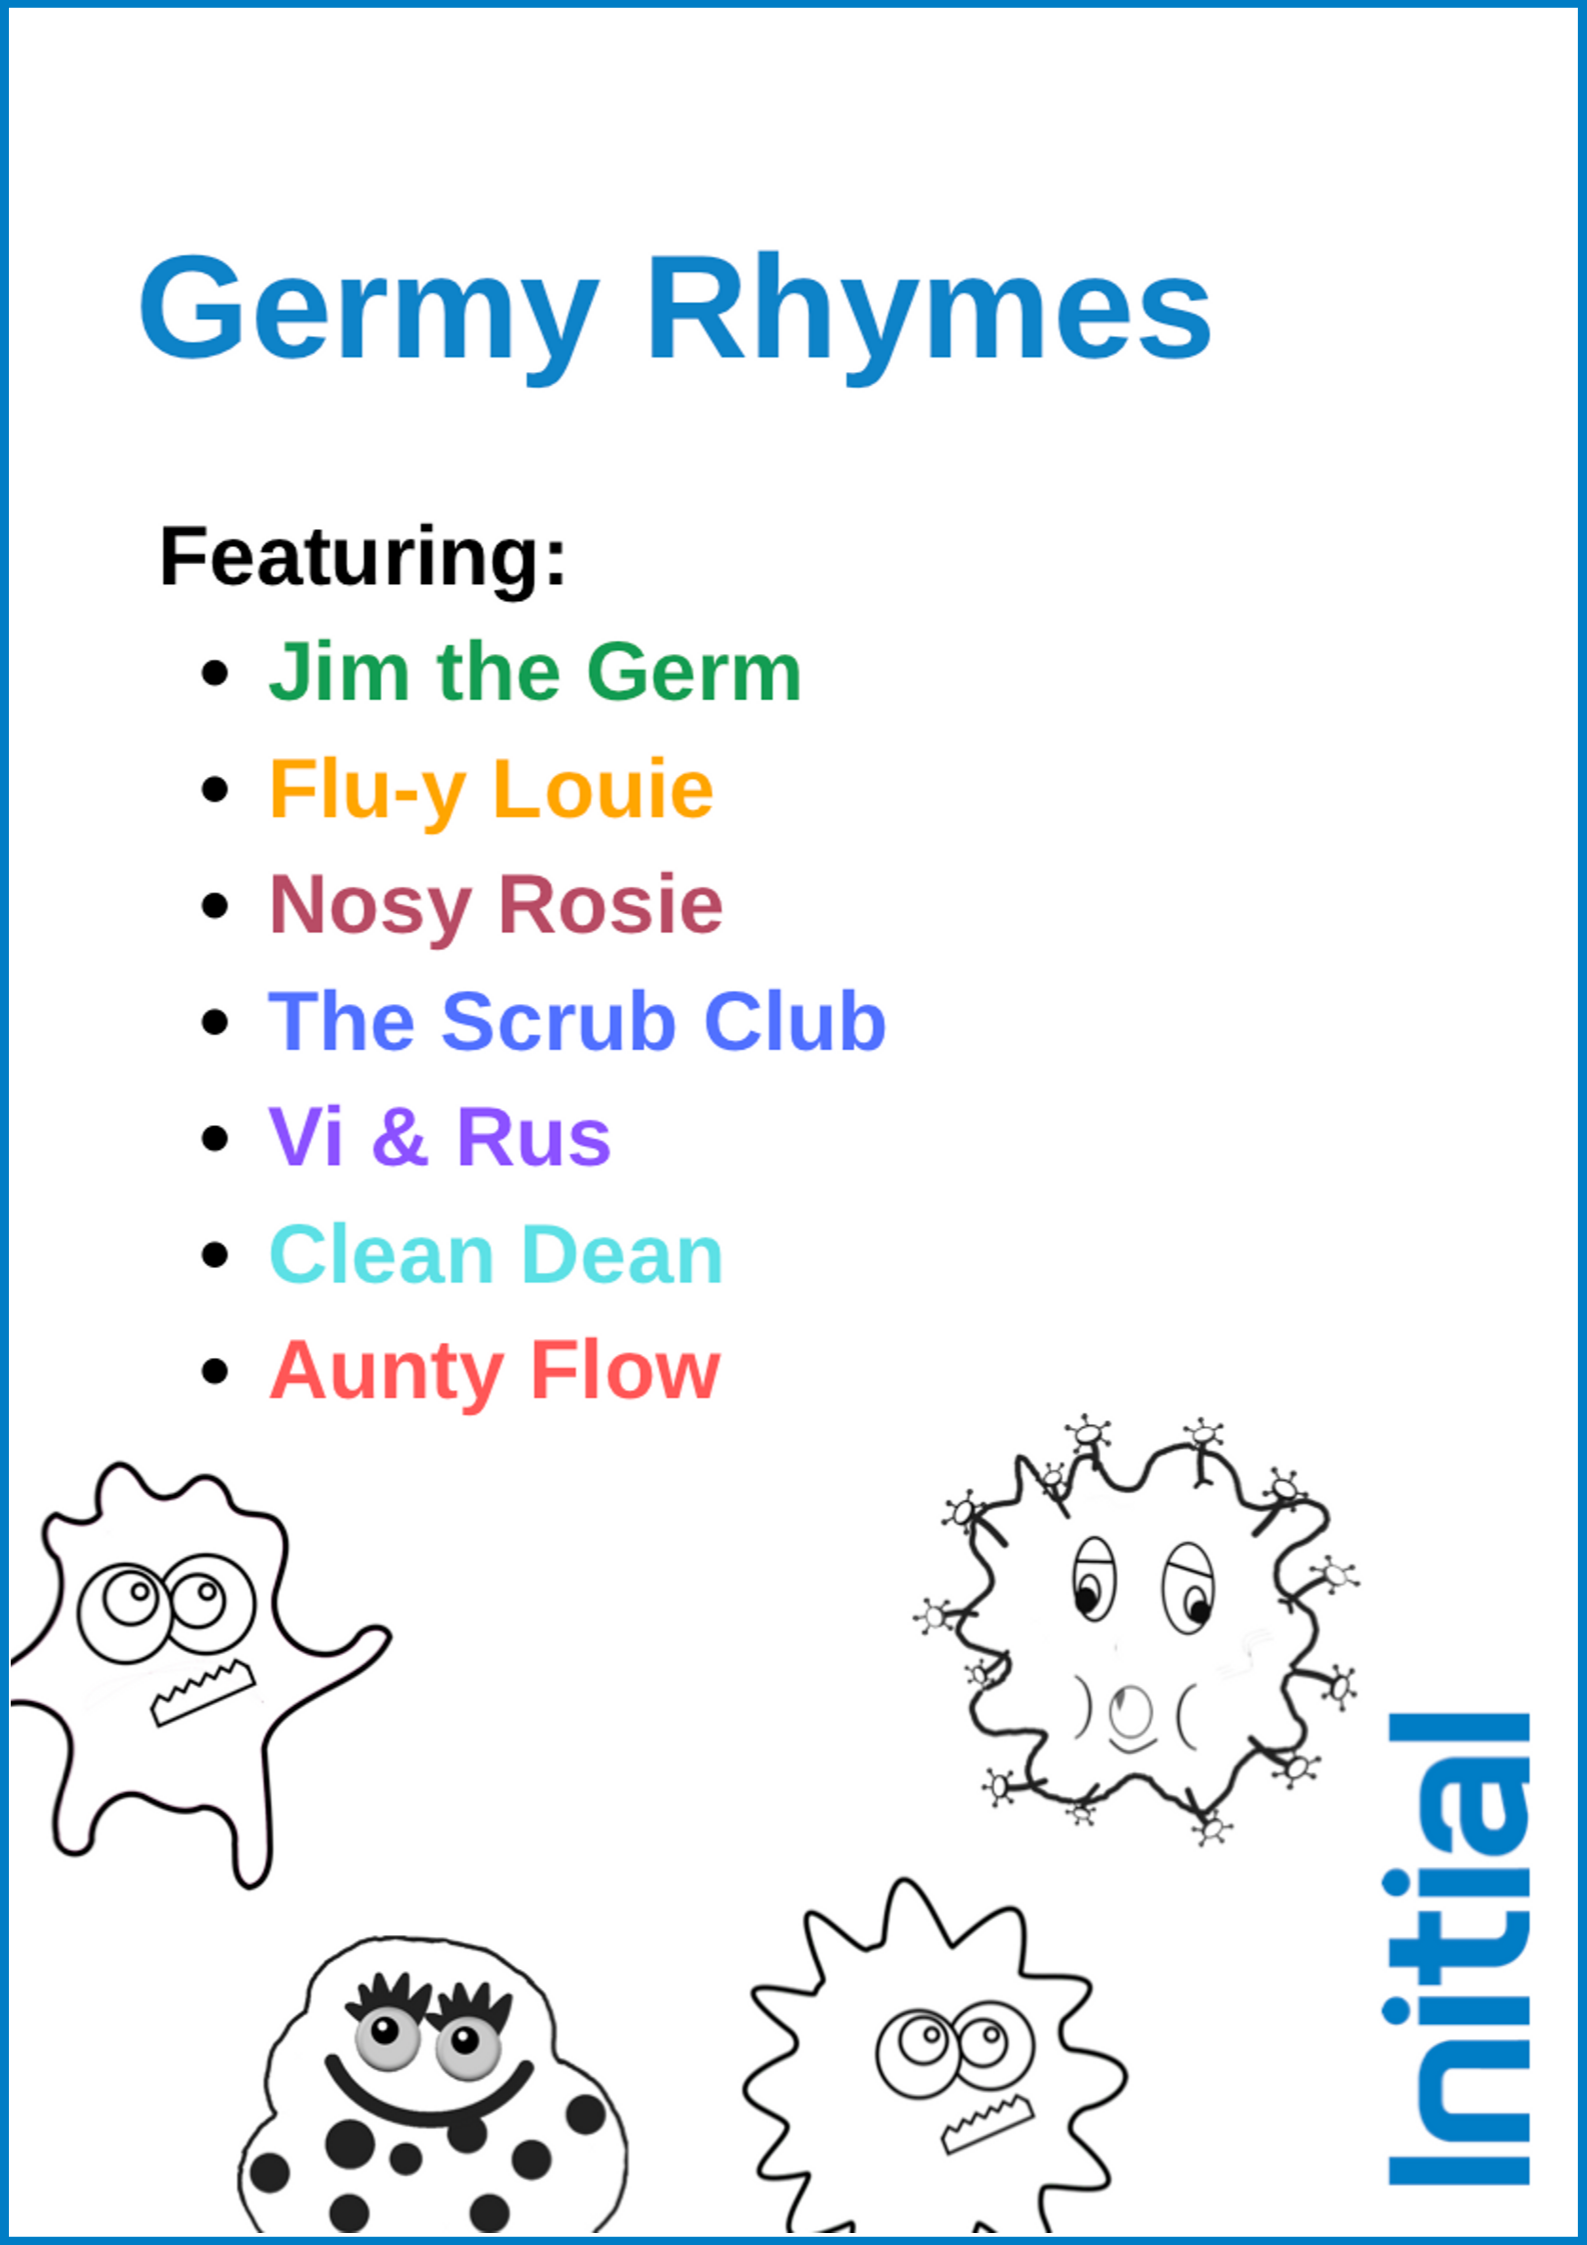 ZA _ Initial _ Asset Image _ Initial Hygiene Germy Rhymes Activity Book cover